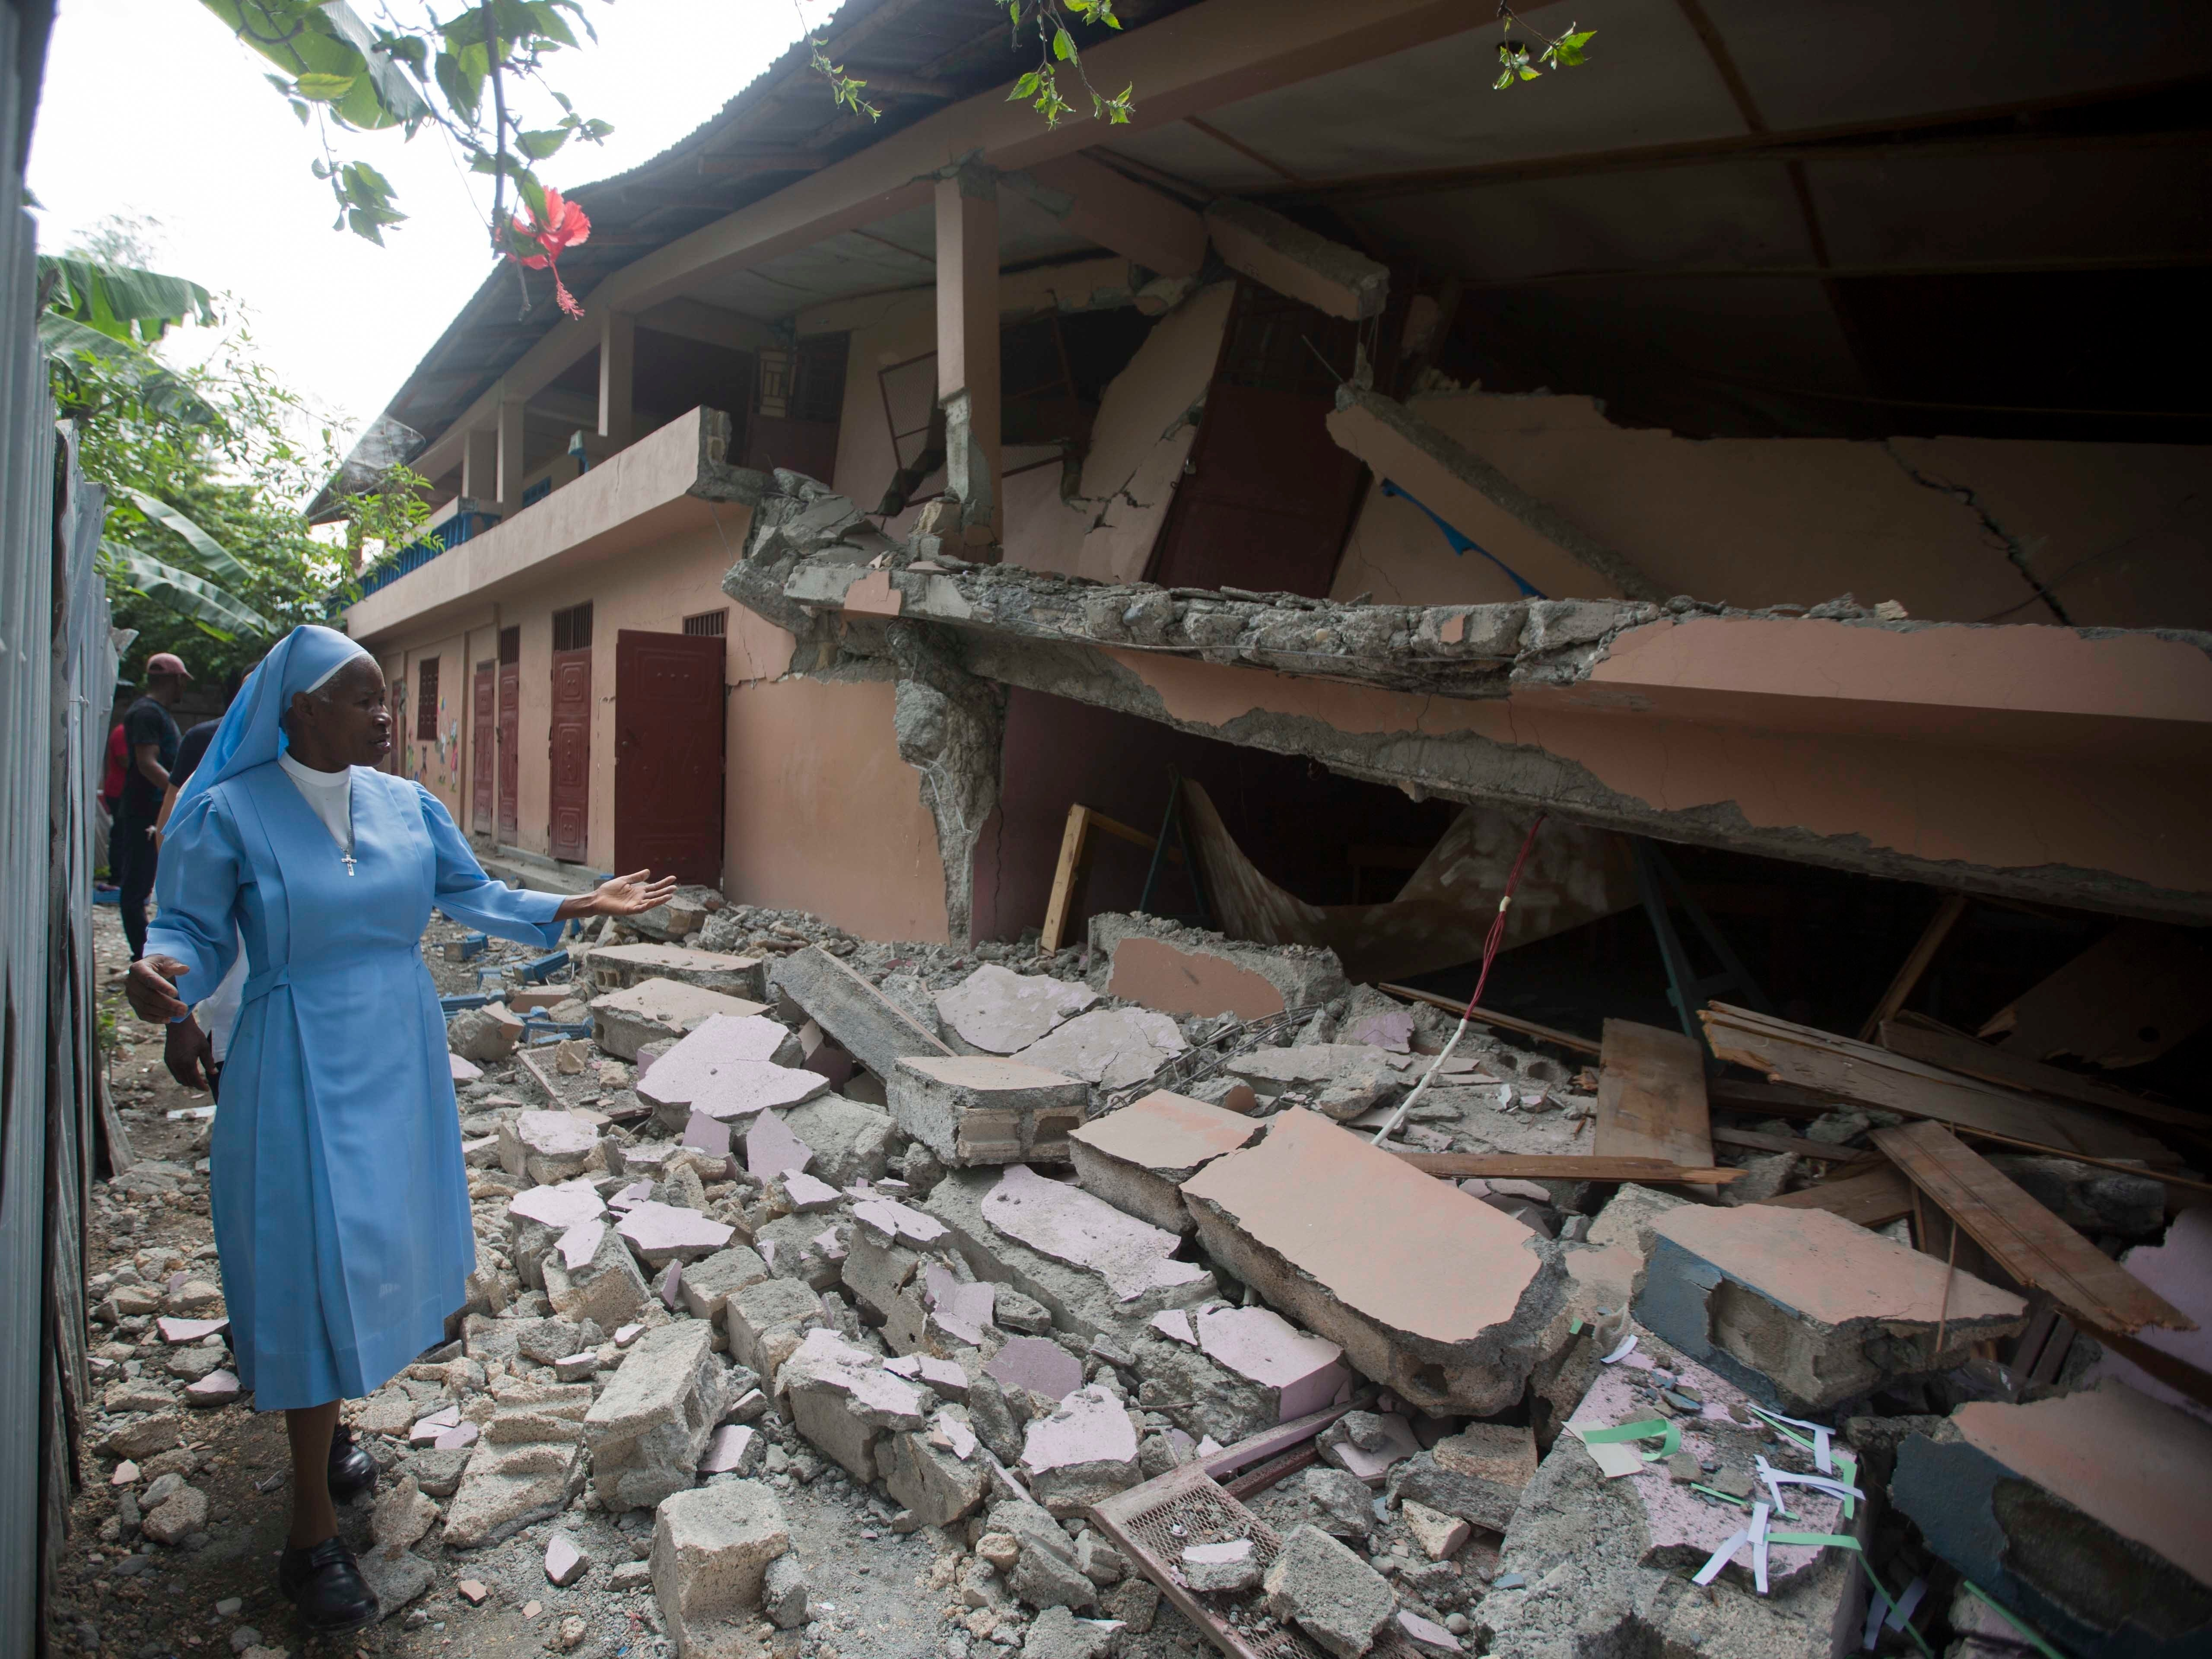 Sr Maryse Alsaint walks alongside a school damaged by a magnitude 5.9 earthquake the night before, in Gros Morne, Haiti, Sunday, Oct. 7, 2018. Emergency teams worked to provide relief in Haiti on Sunday after the quake killed at least 12 people and left dozens injured.